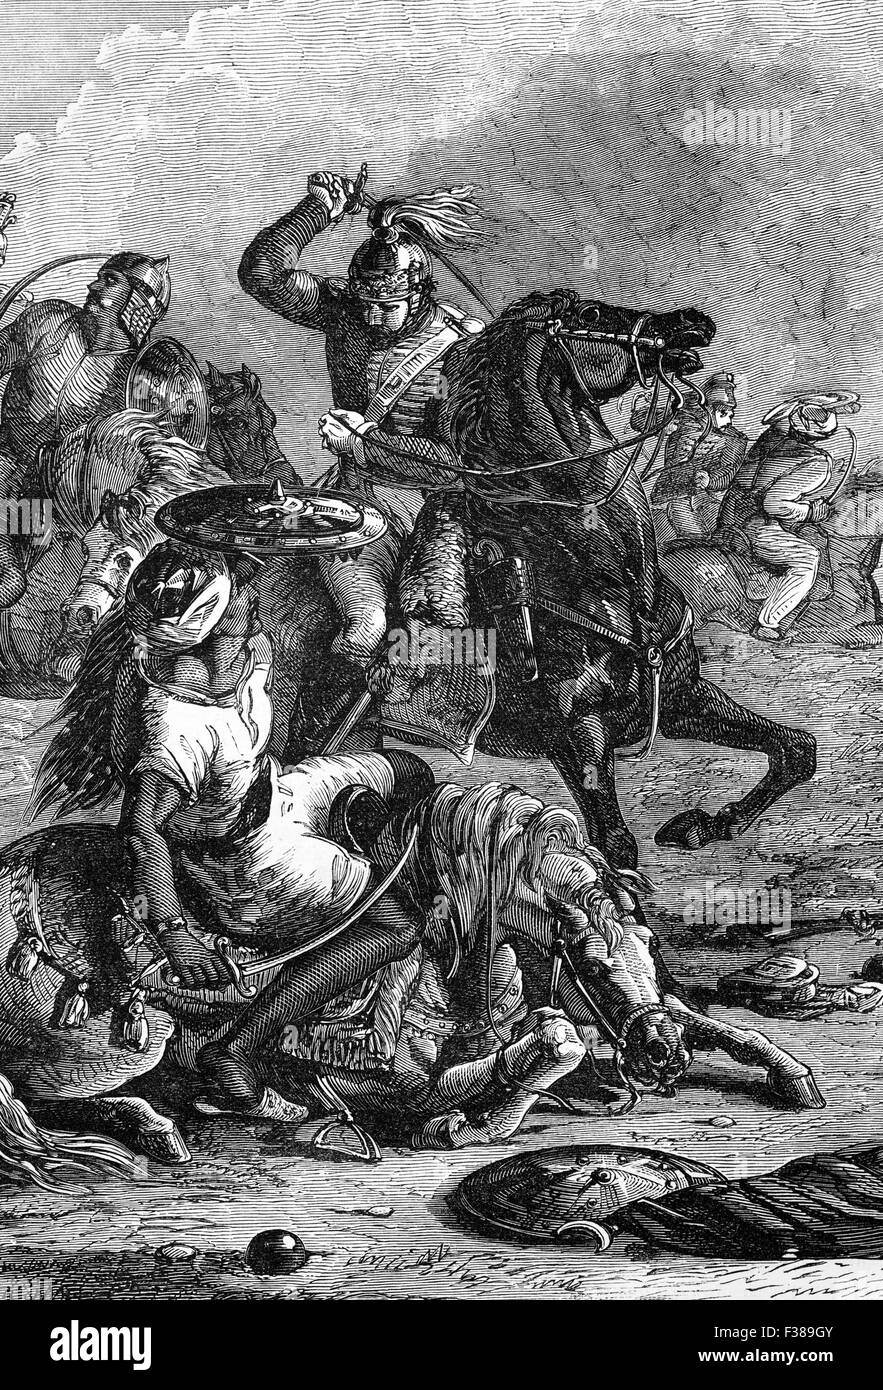 The Battle of Assaye was a major battle of the Second Anglo-Maratha War fought between the Maratha Confederacy and - Stock Image